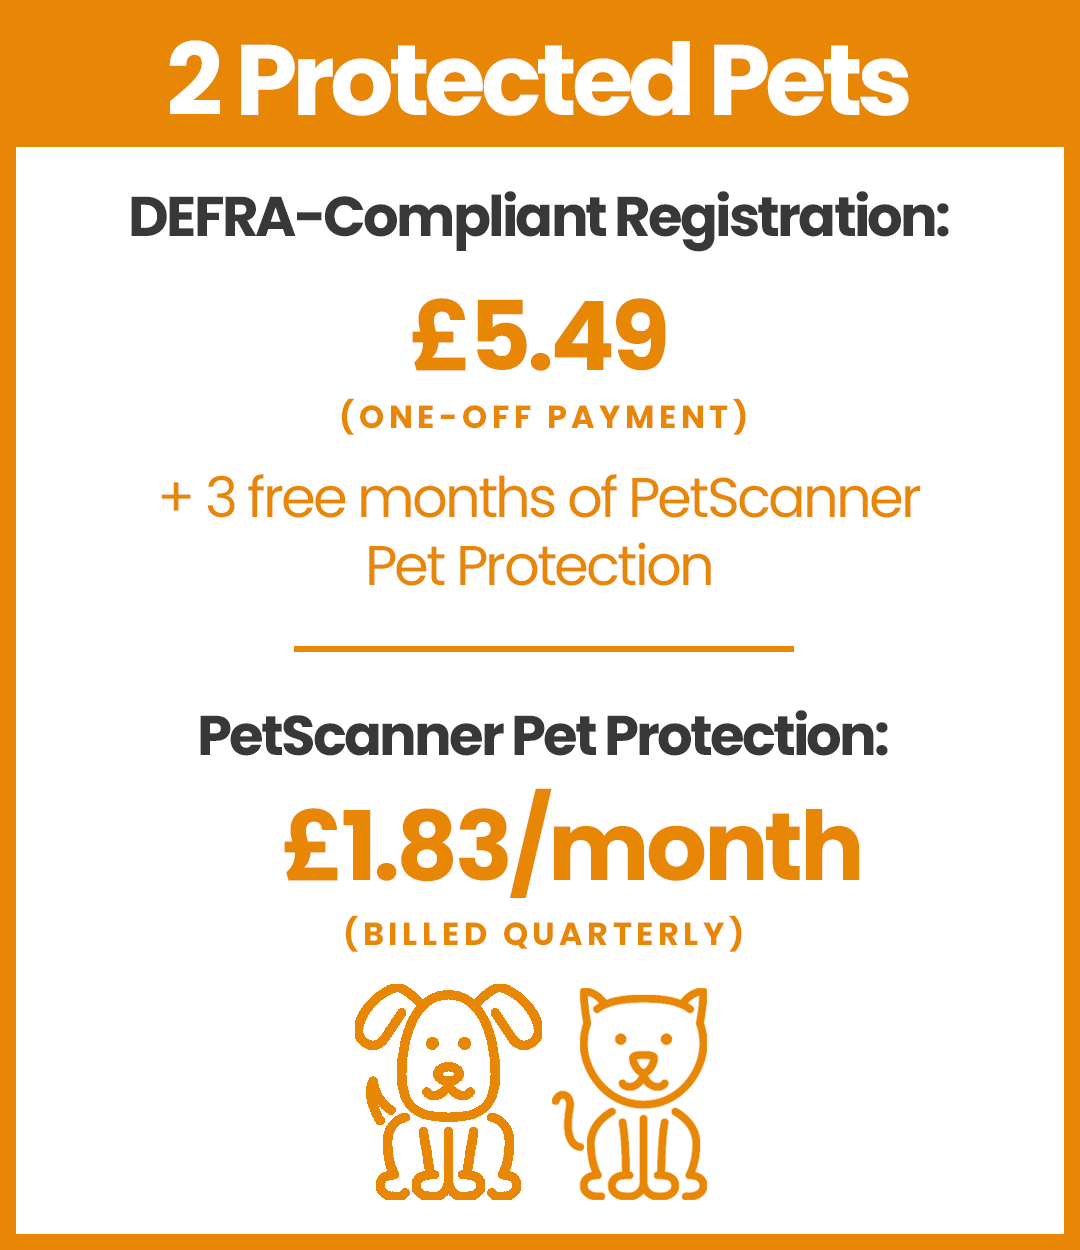 PetScanner pricing for 2 pets